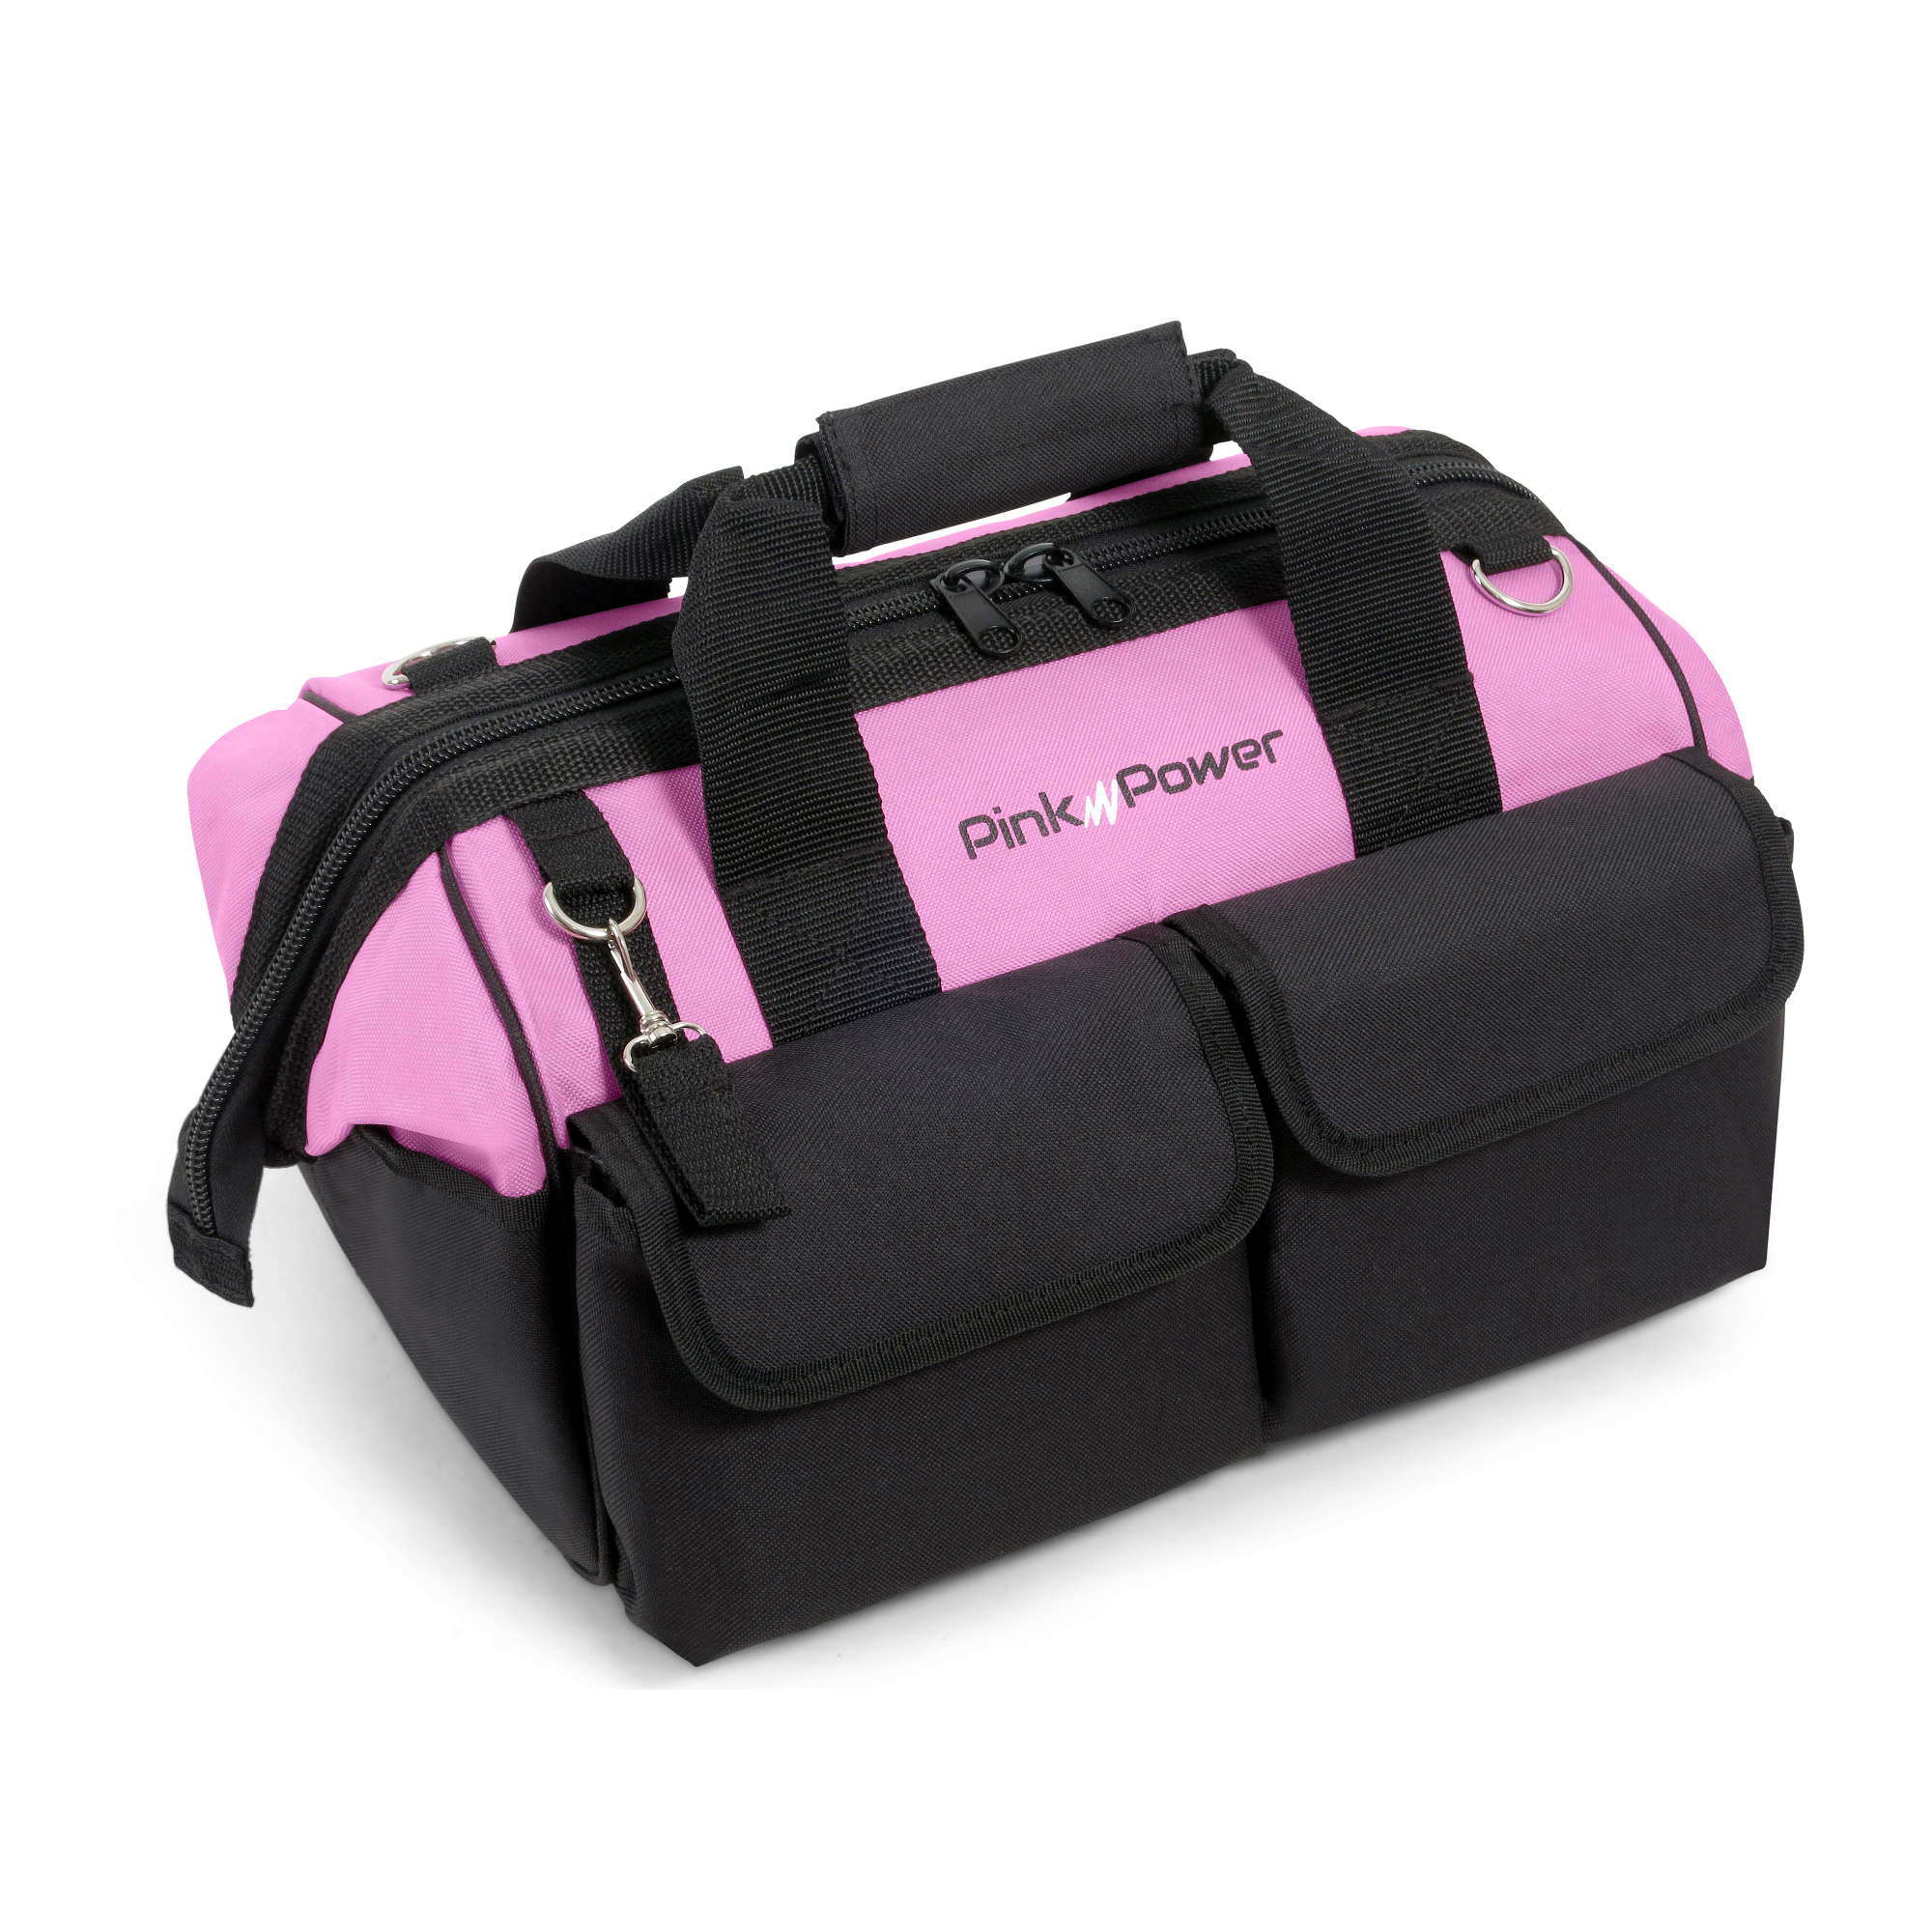 "Pink Power 16"" Nylon Tool Bag for Women with 22 Storage Pockets and Padded Shoulder Strap by Pink Power"